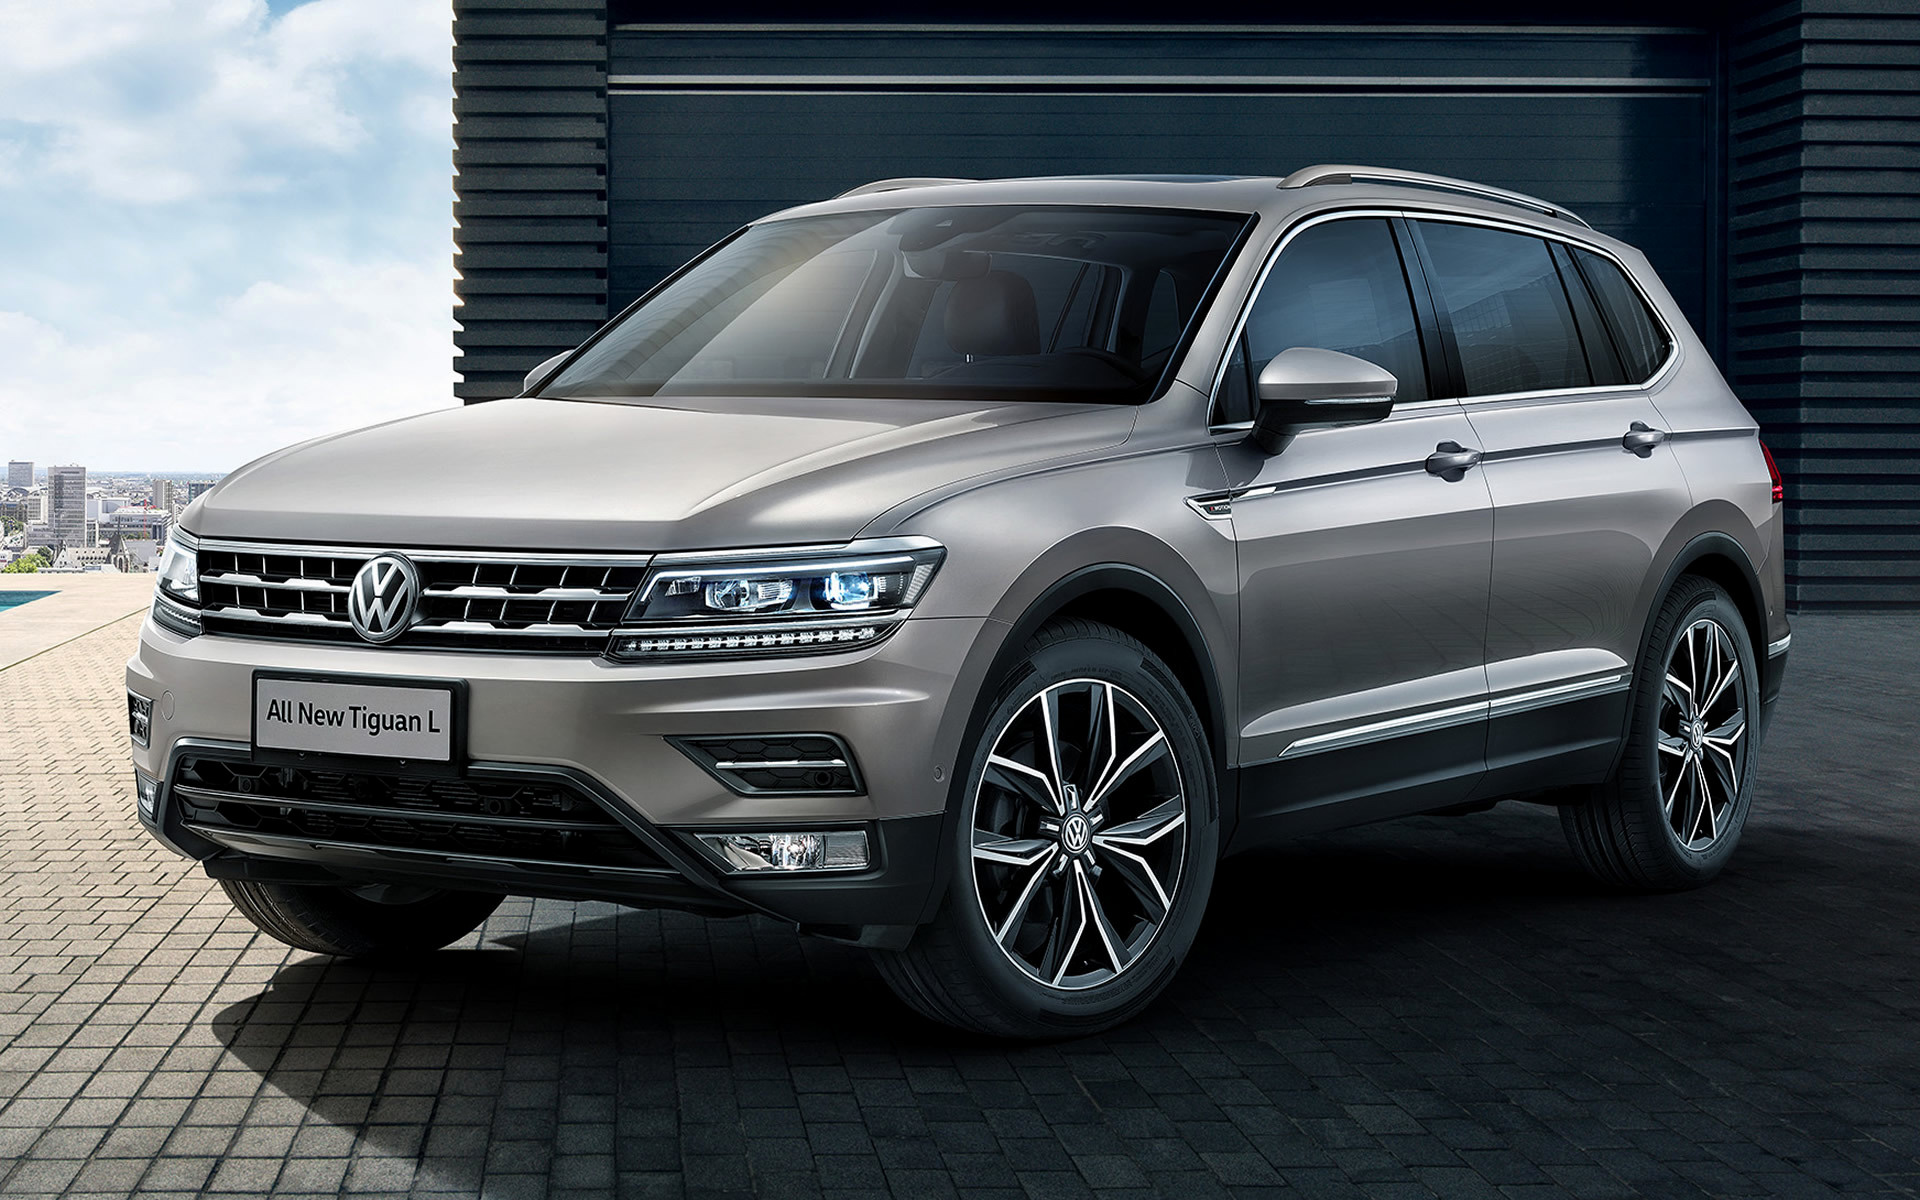 2017 Volkswagen Tiguan L CN Wallpapers And HD Images